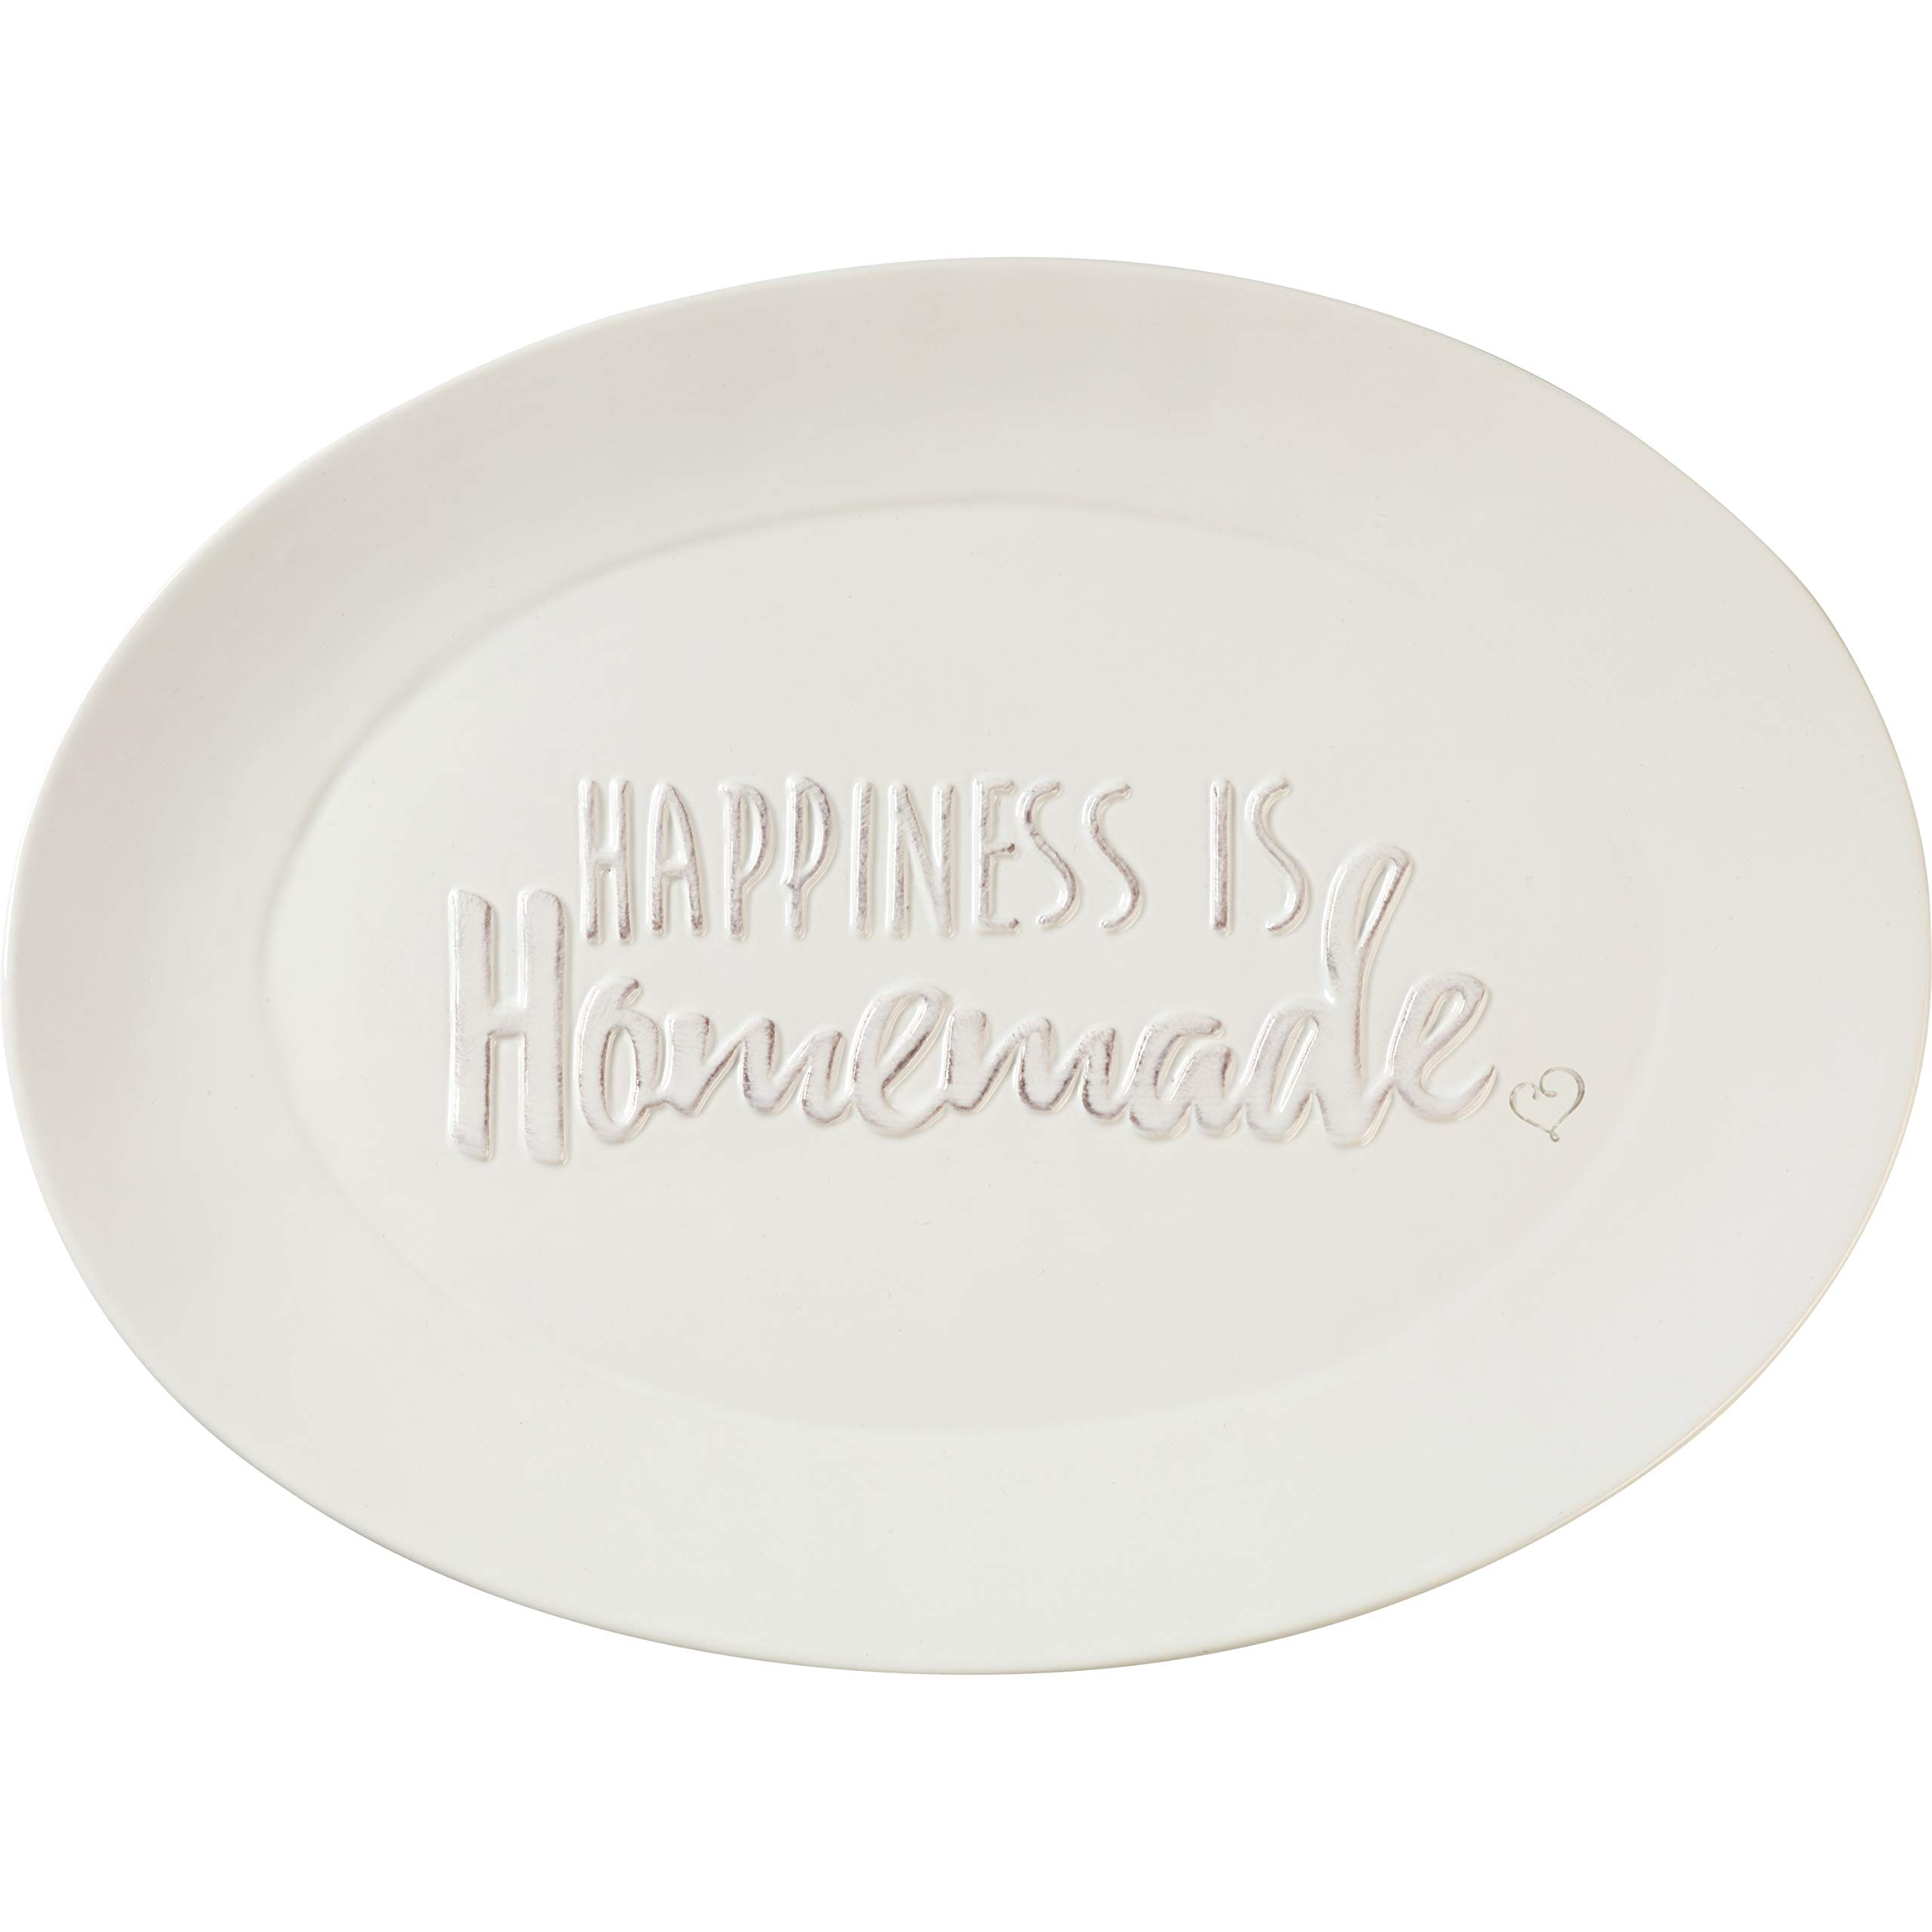 Precious Moments Bountiful Blessings Happiness Is HomemadeCeramic Serving Platter 13 x 9.5 inches 182423